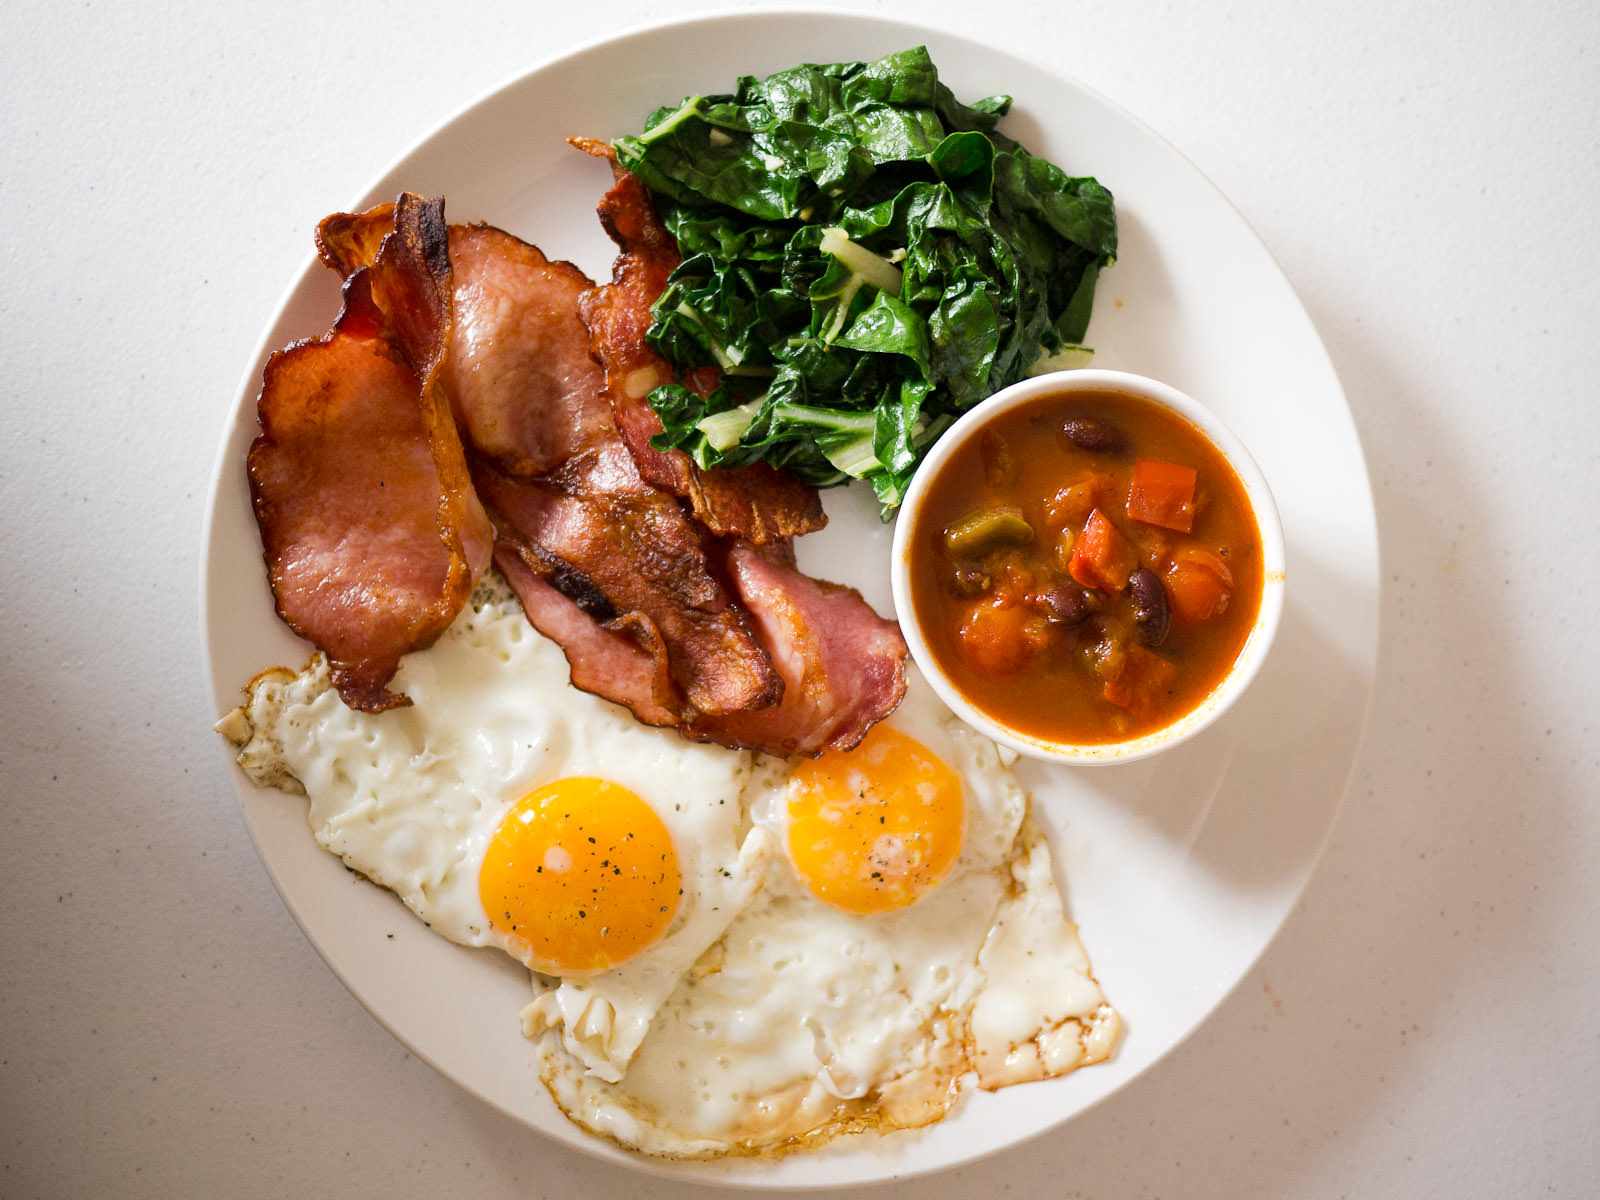 Fried eggs, bacon, garlic silverbeet, and spicy tomato, capsicum and beans